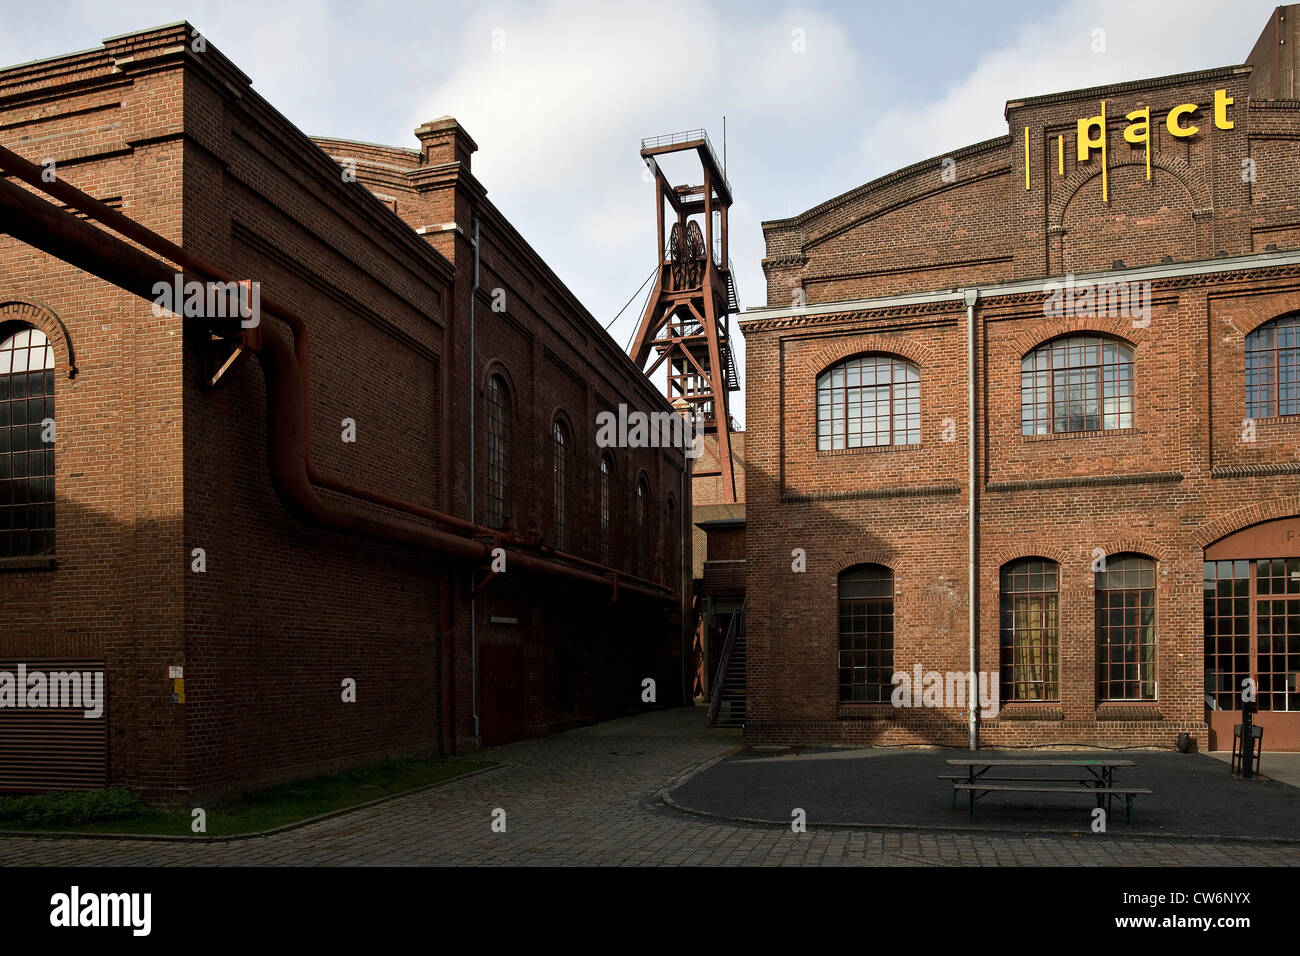 PACT Zollverein, Performing Arts Choreographisches centre NRW Tanzlandschaft Ruhr, Germany, North Rhine-Westphalia, - Stock Image